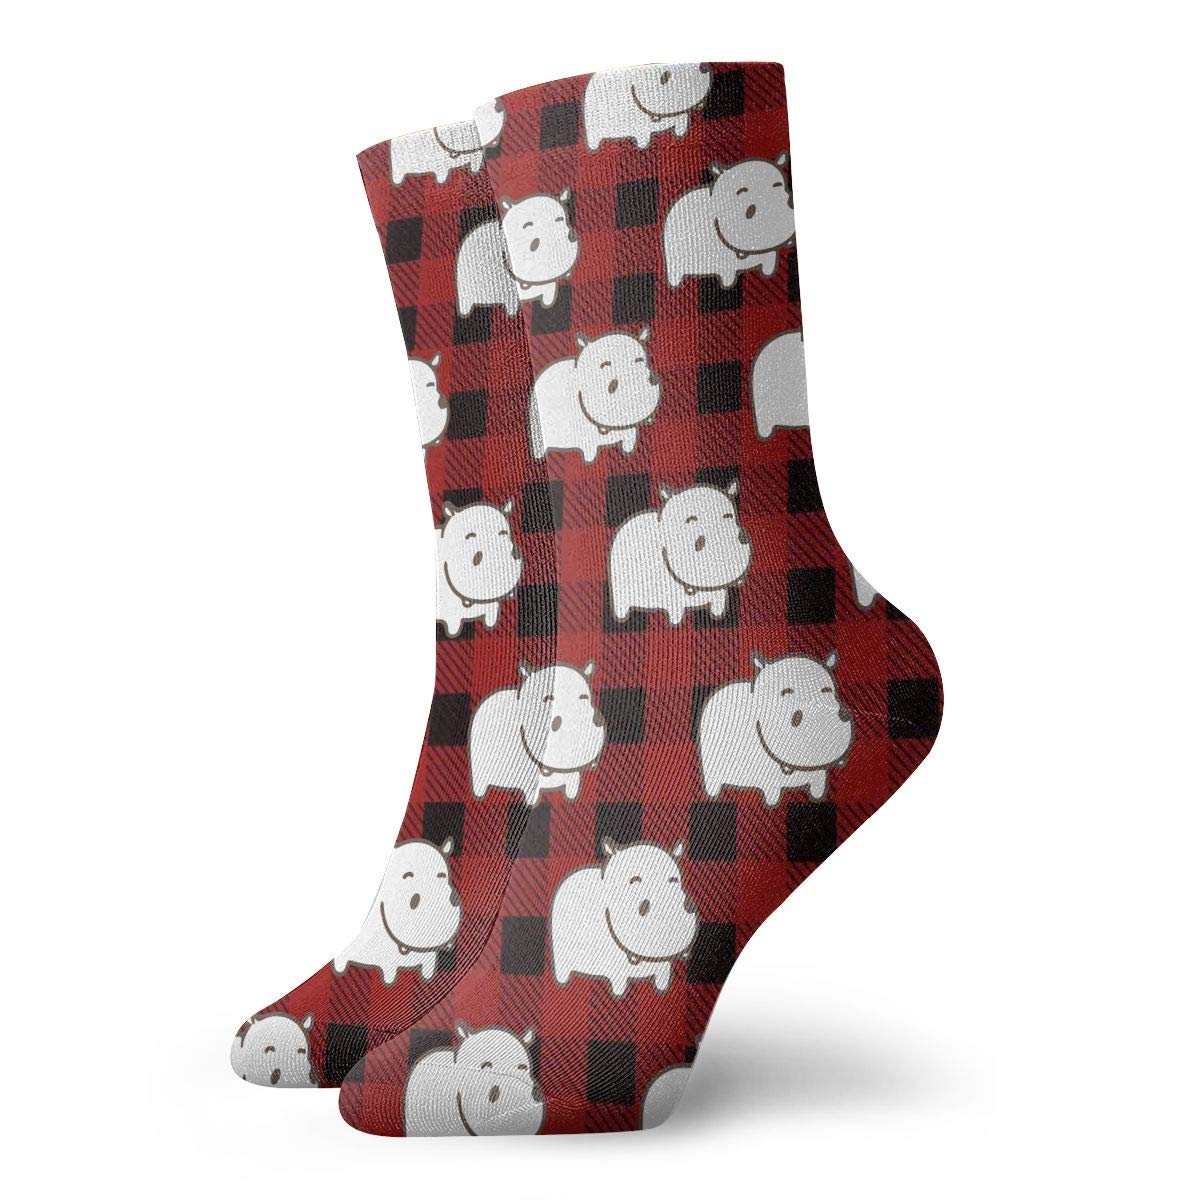 Baby Hippo Unisex Funny Casual Crew Socks Athletic Socks For Boys Girls Kids Teenagers